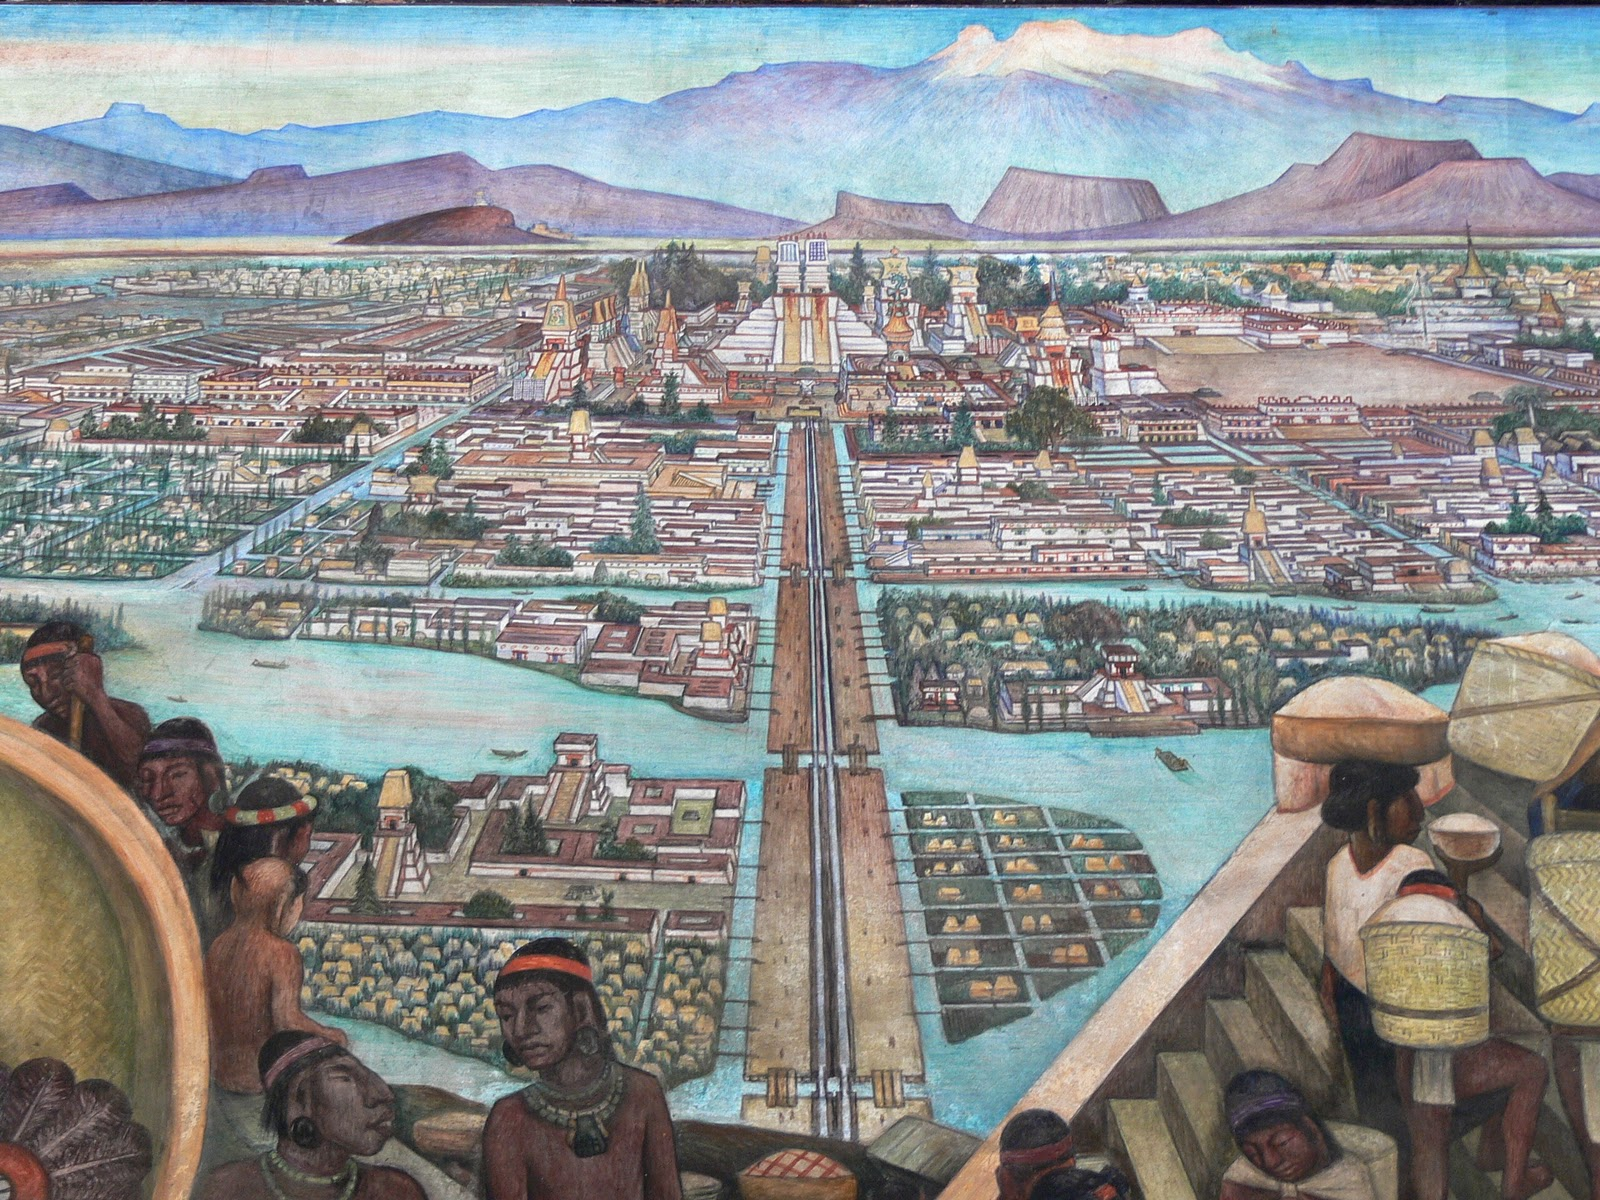 bcr year 8 history images of tenochtitlan